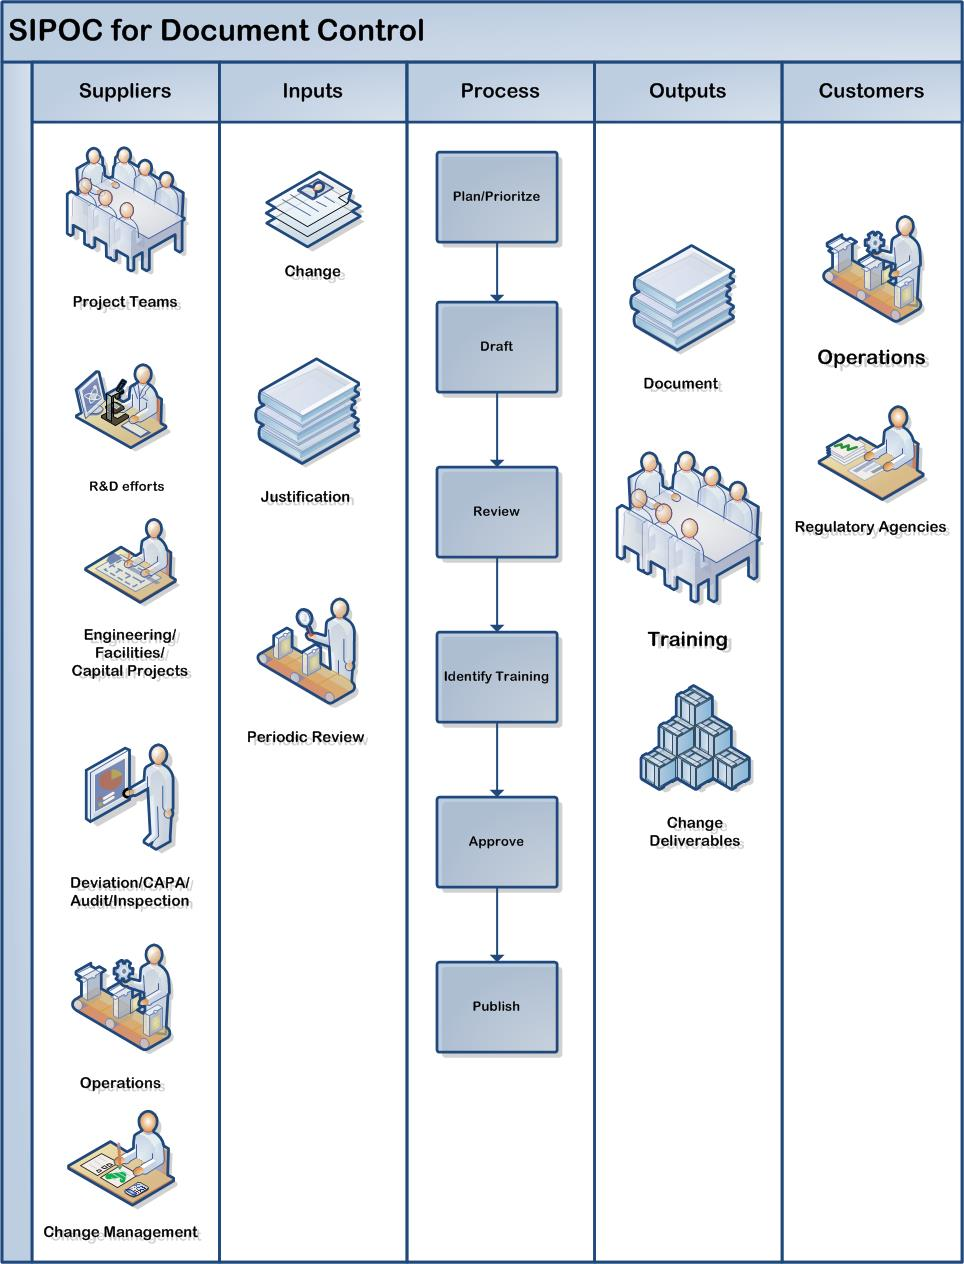 SIPOC for document control